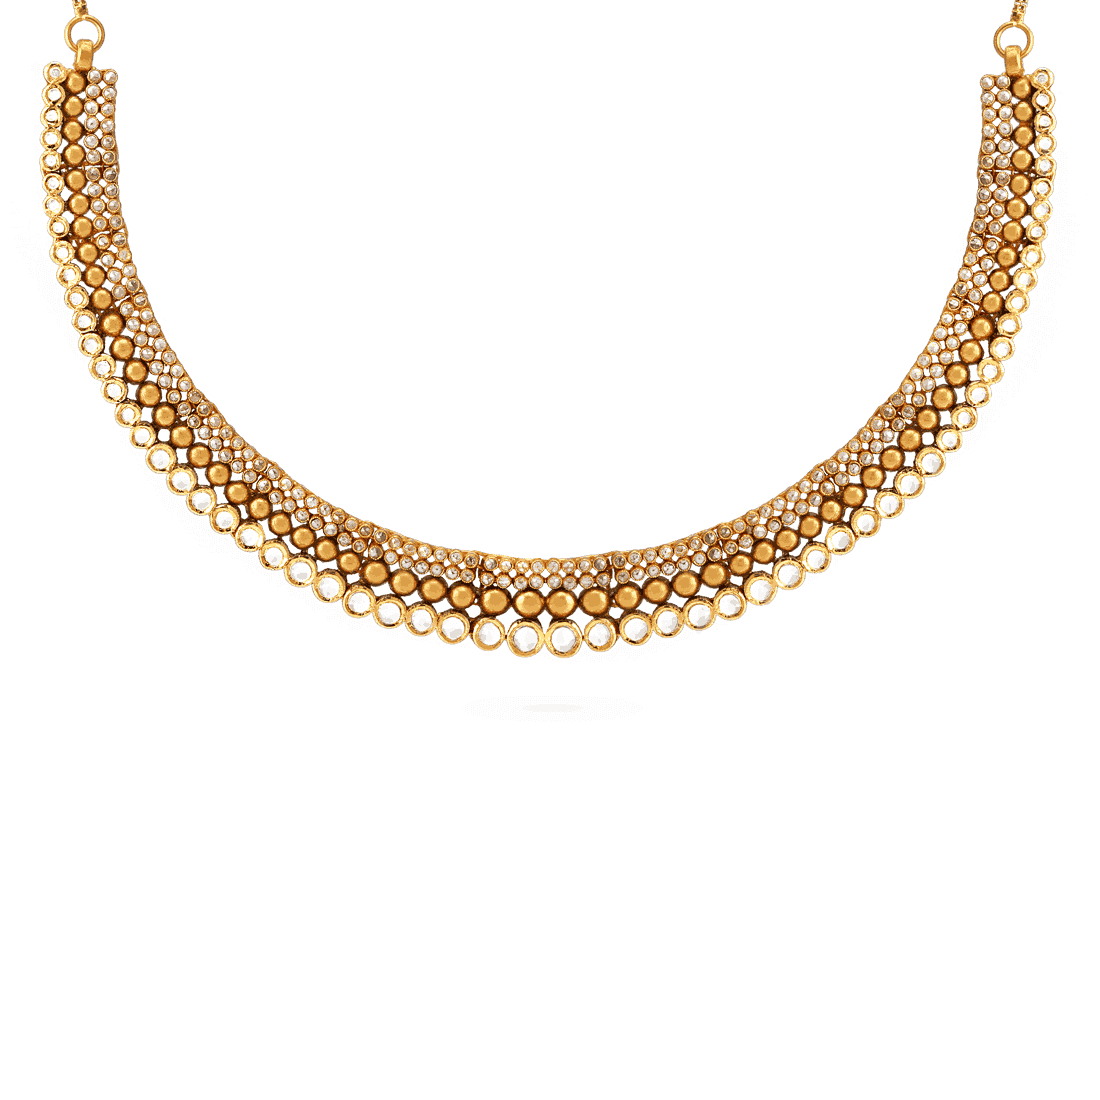 27084 - 22ct Asian Wedding Necklace